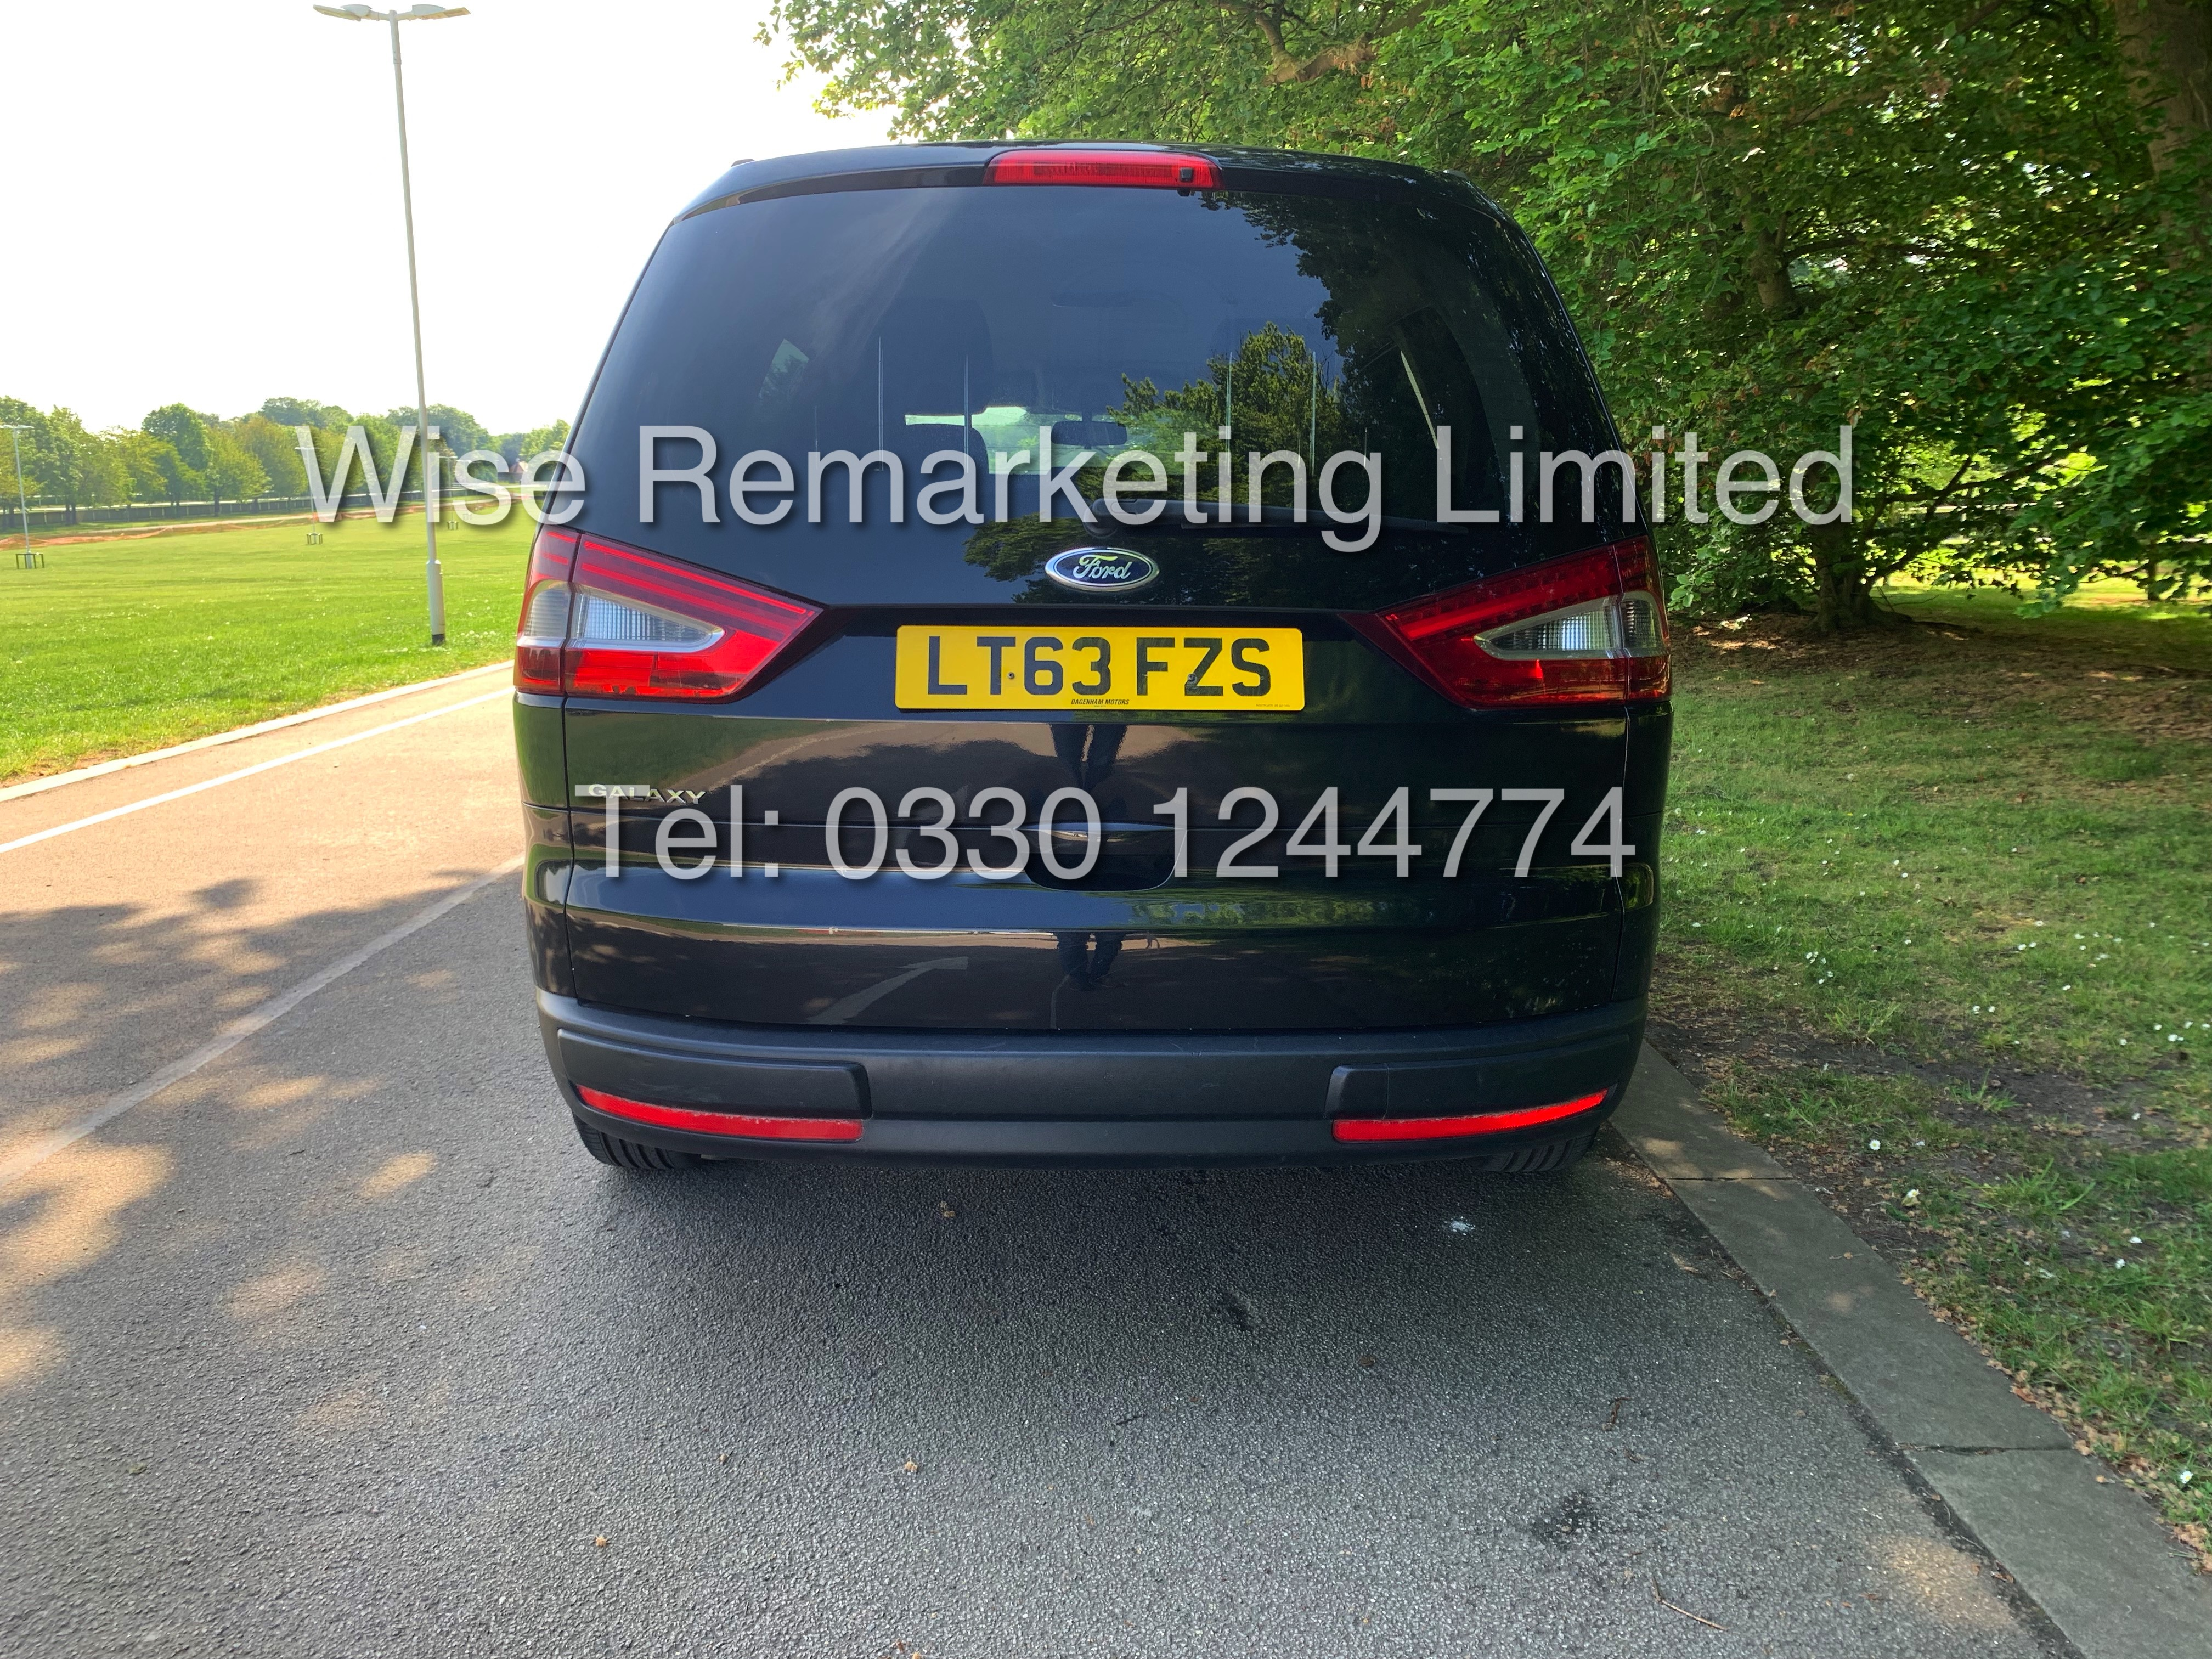 FORD GALAXY ZETEC 2.0L TDCI AUTO 7 SEATER MPV 63 REG *1 OWNER* - Image 6 of 20